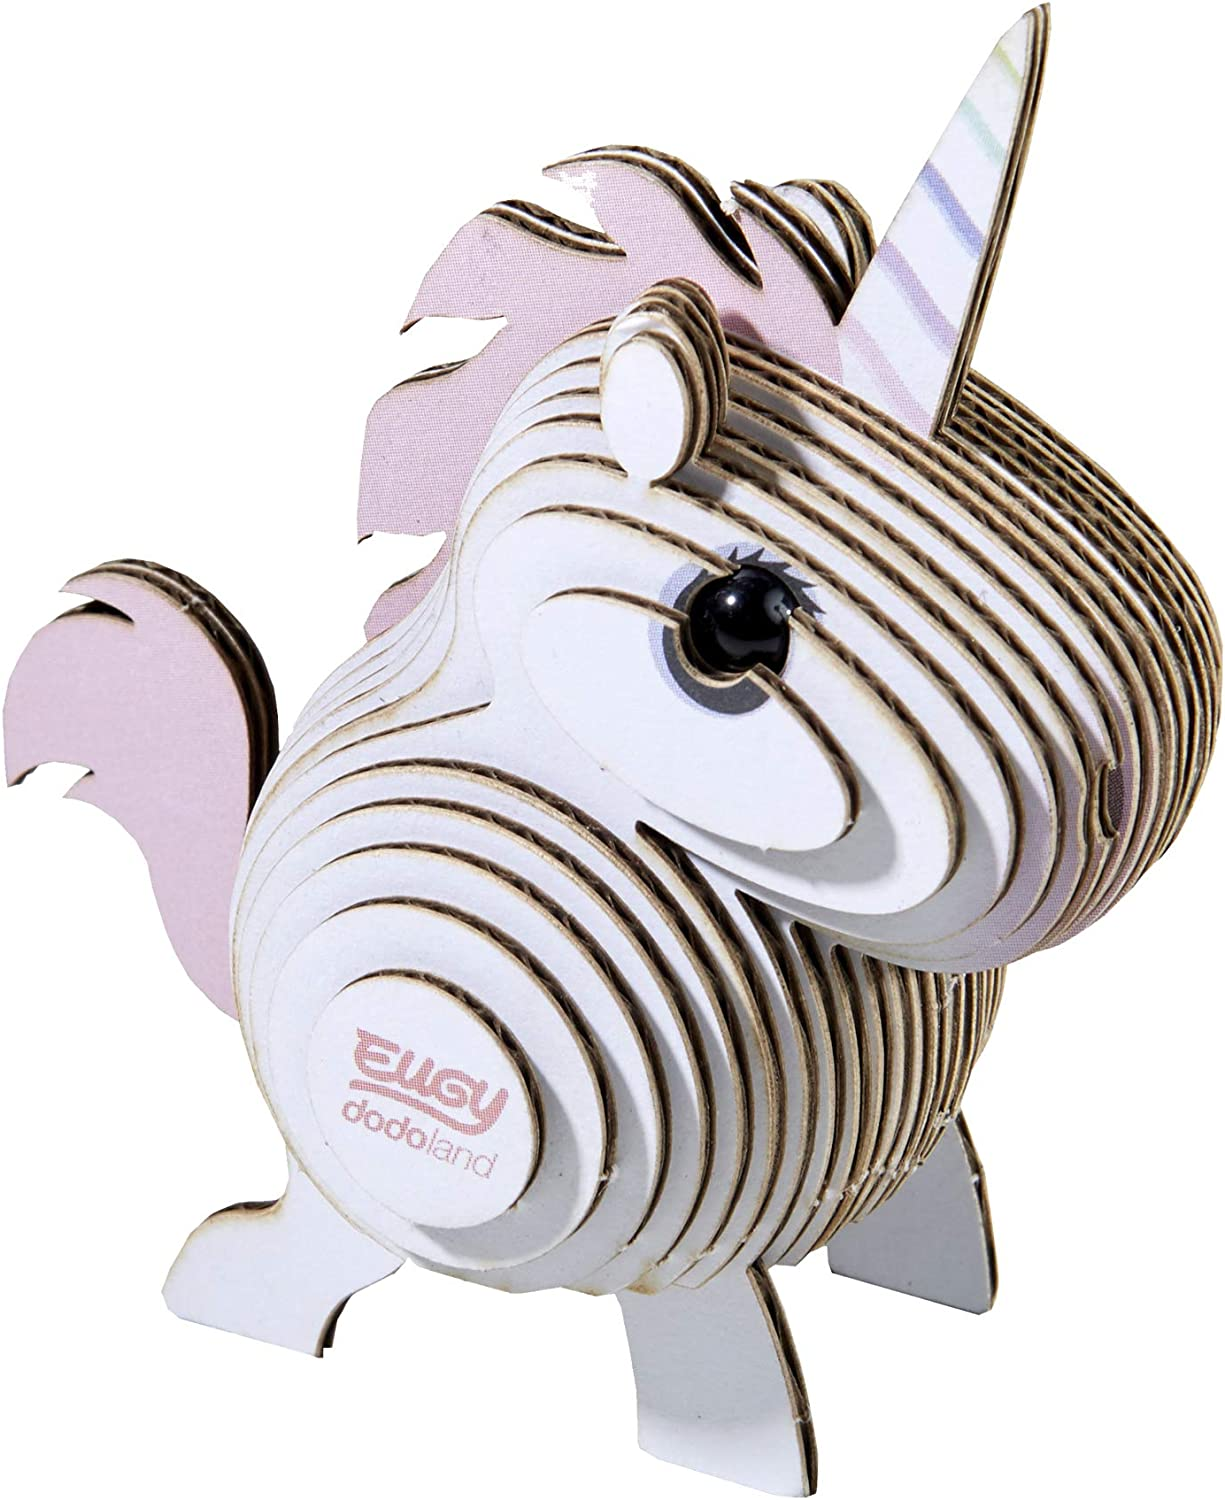 EUGY 3D Unicorn Model Craft Kit